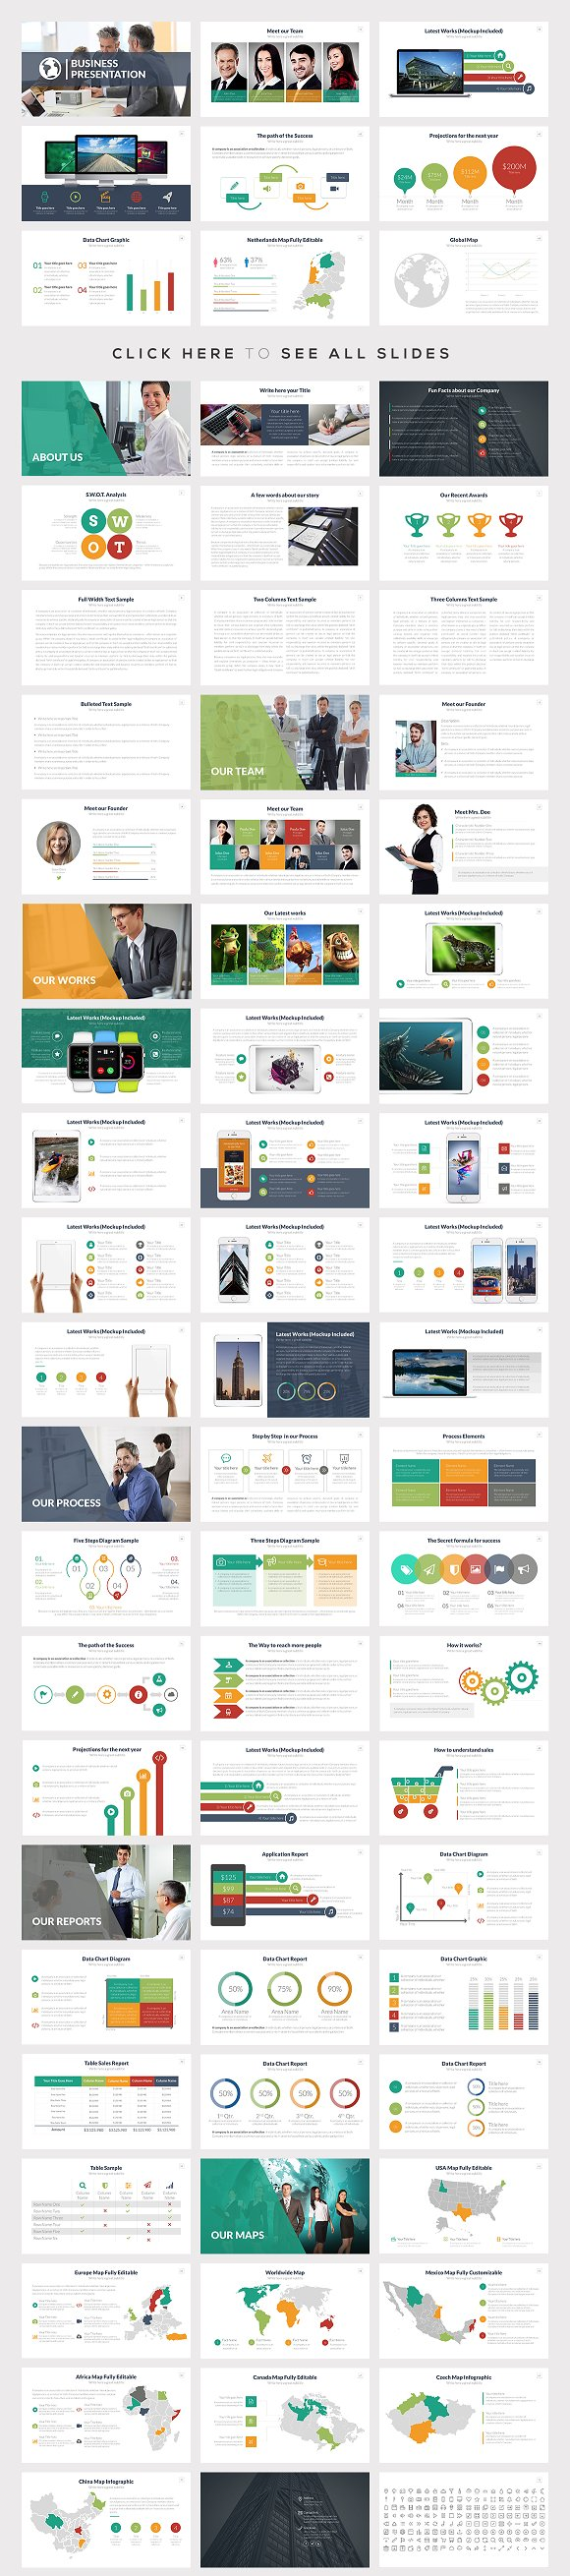 Best powerpoint templates bundle presentation templates best powerpoint templates bundle presentation templates creative market toneelgroepblik Images